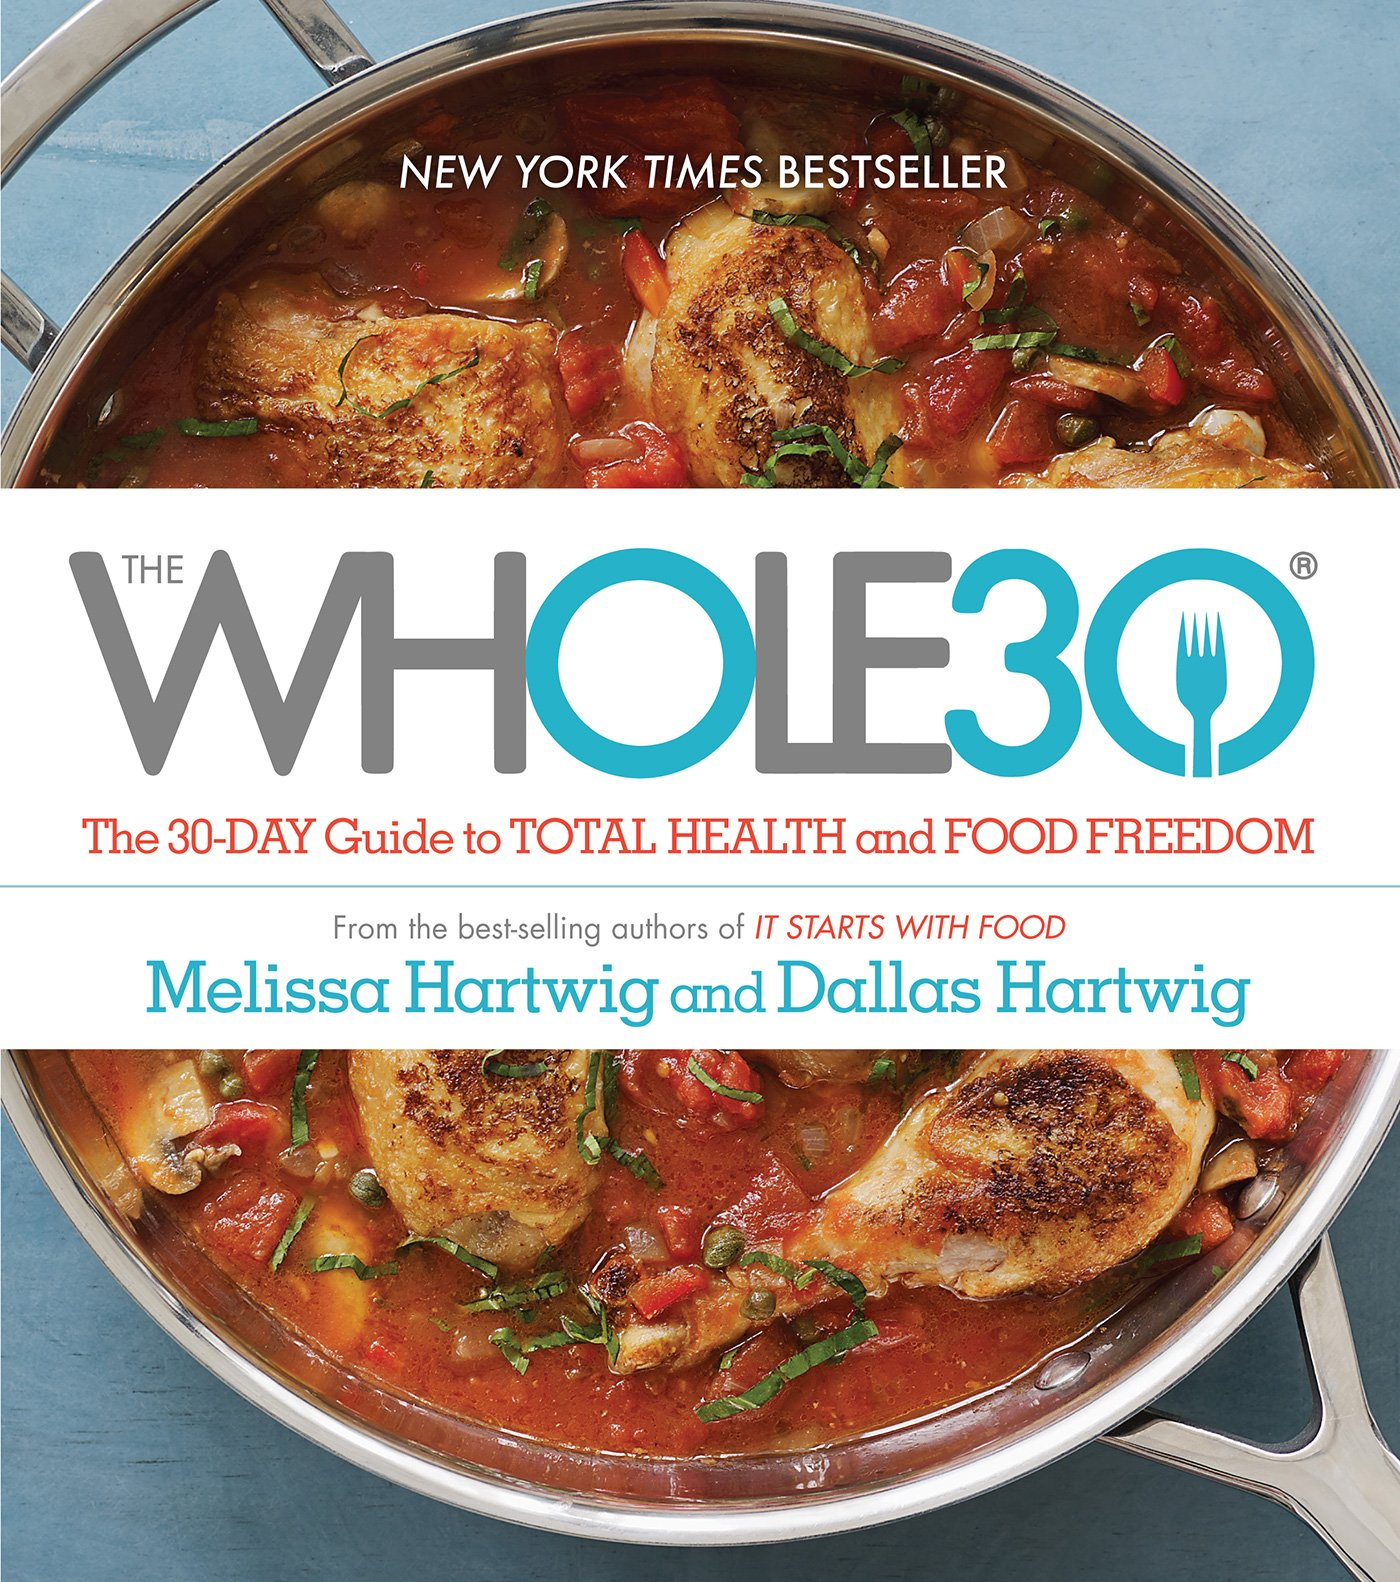 The whole30 the 30 day guide to total health and food freedom the whole30 the 30 day guide to total health and food freedom melissa hartwig dallas hartwig 9780670069538 books amazon forumfinder Image collections